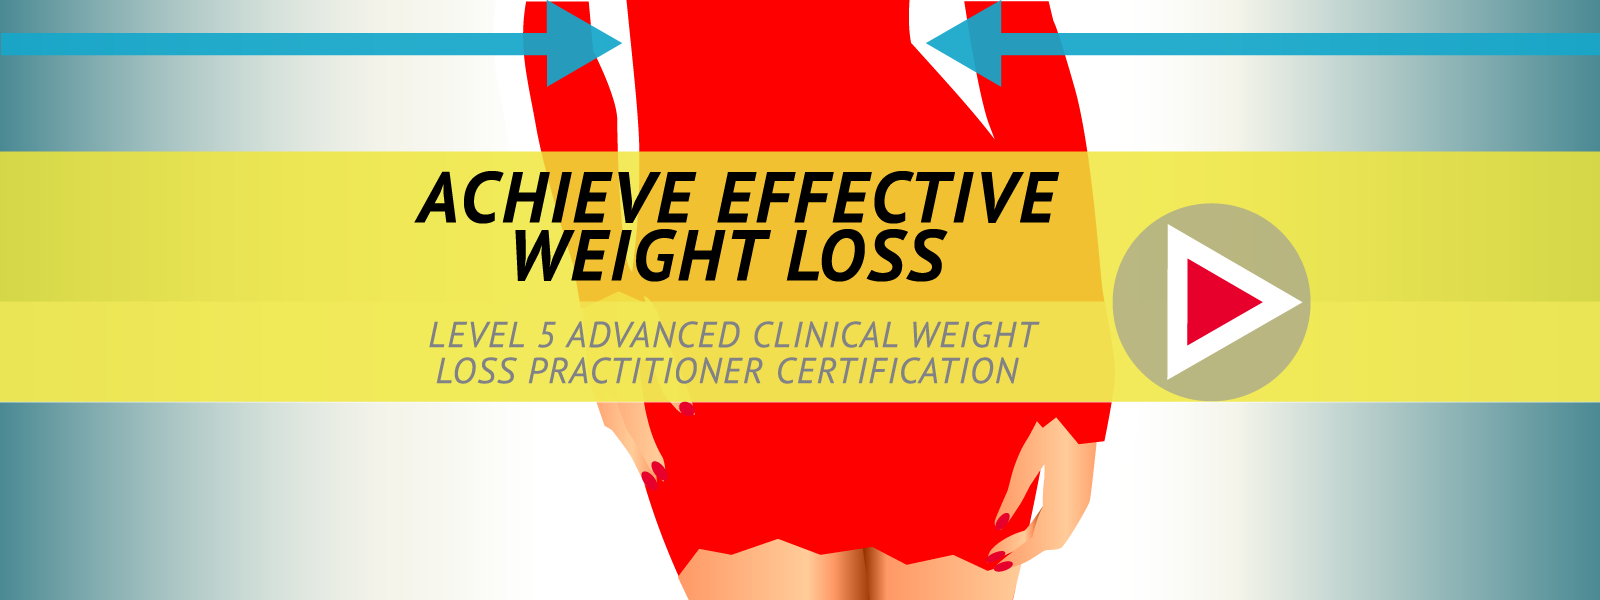 Personal weight loss programme that works